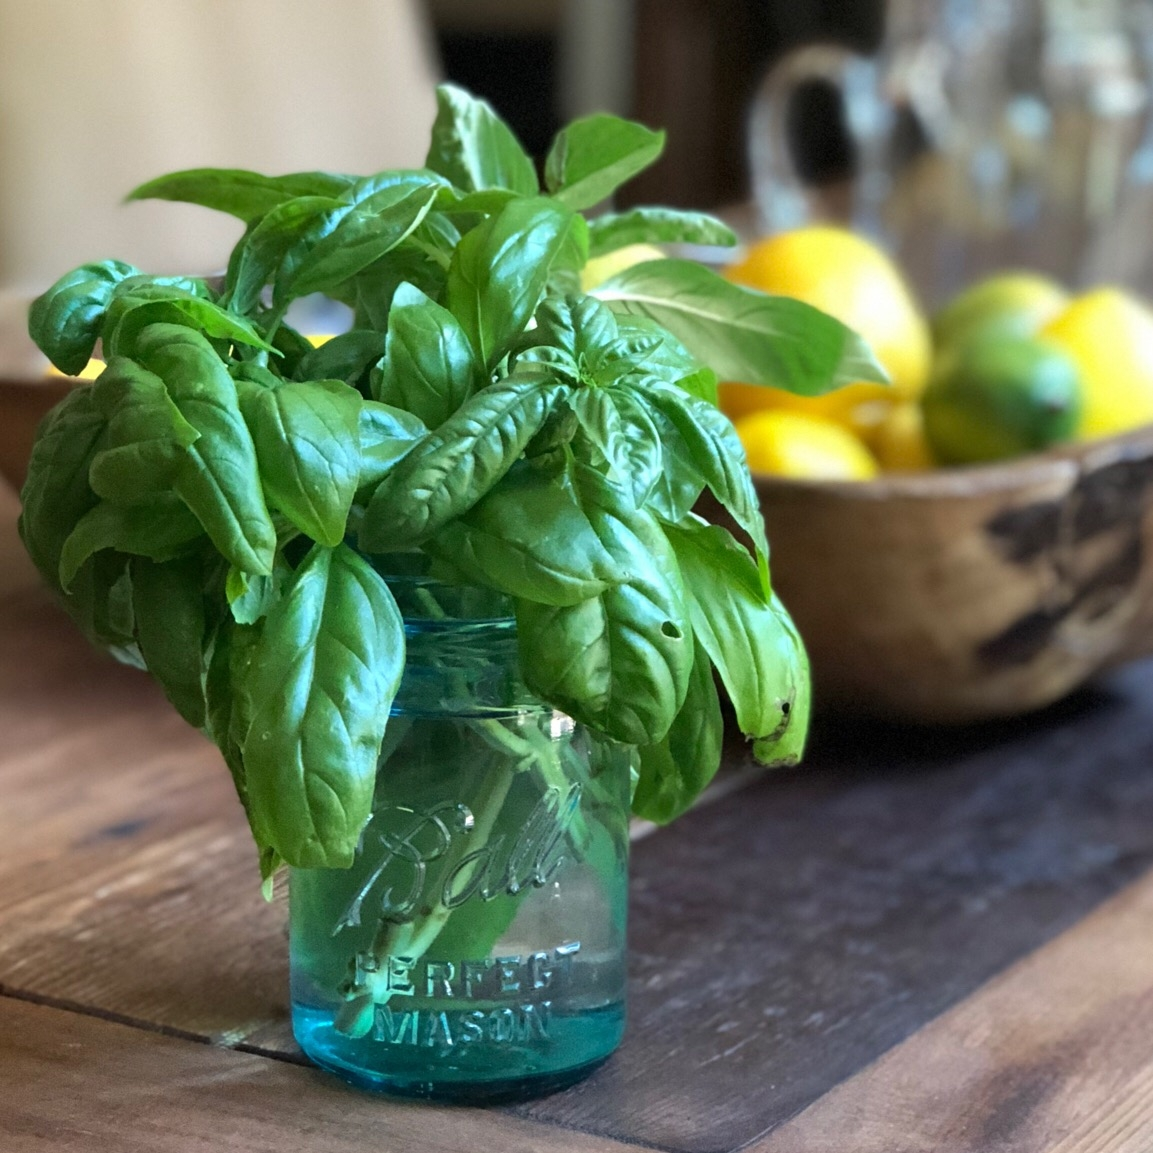 How to store basil? Just like flowers...In a jar or vase with water, out of direct sun light.